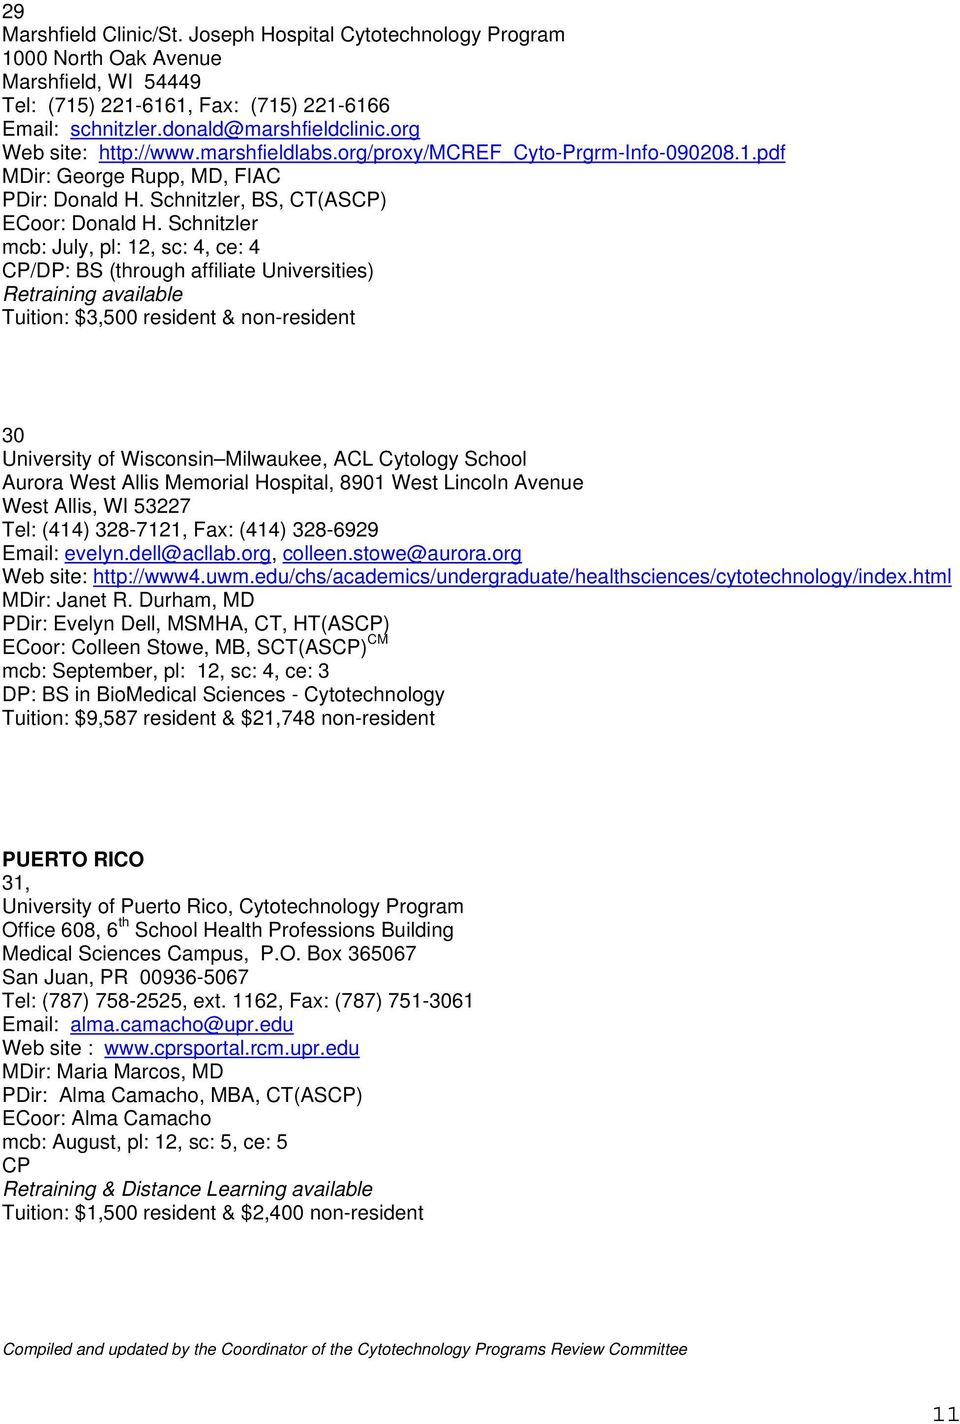 Schnitzler mcb: July, pl: 12, sc: 4, ce: 4 /DP: BS (through affiliate Universities) Tuition: $3,500 resident & non-resident 30 University of Wisconsin Milwaukee, ACL Cytology School Aurora West Allis